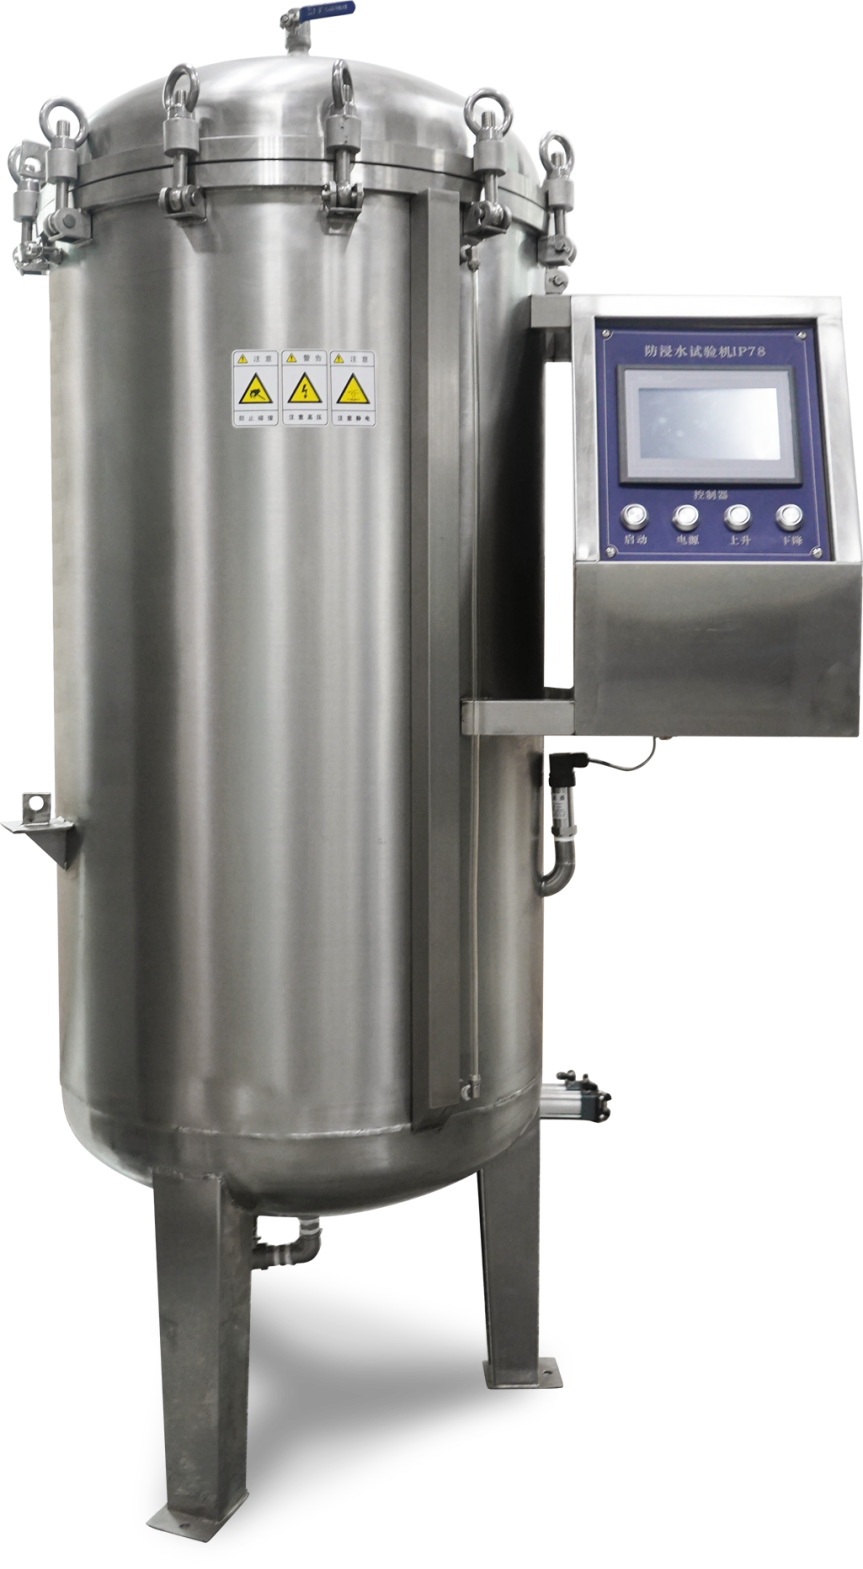 HD-E710-4 Water Inmmersion Test Chamber - IPx7&8